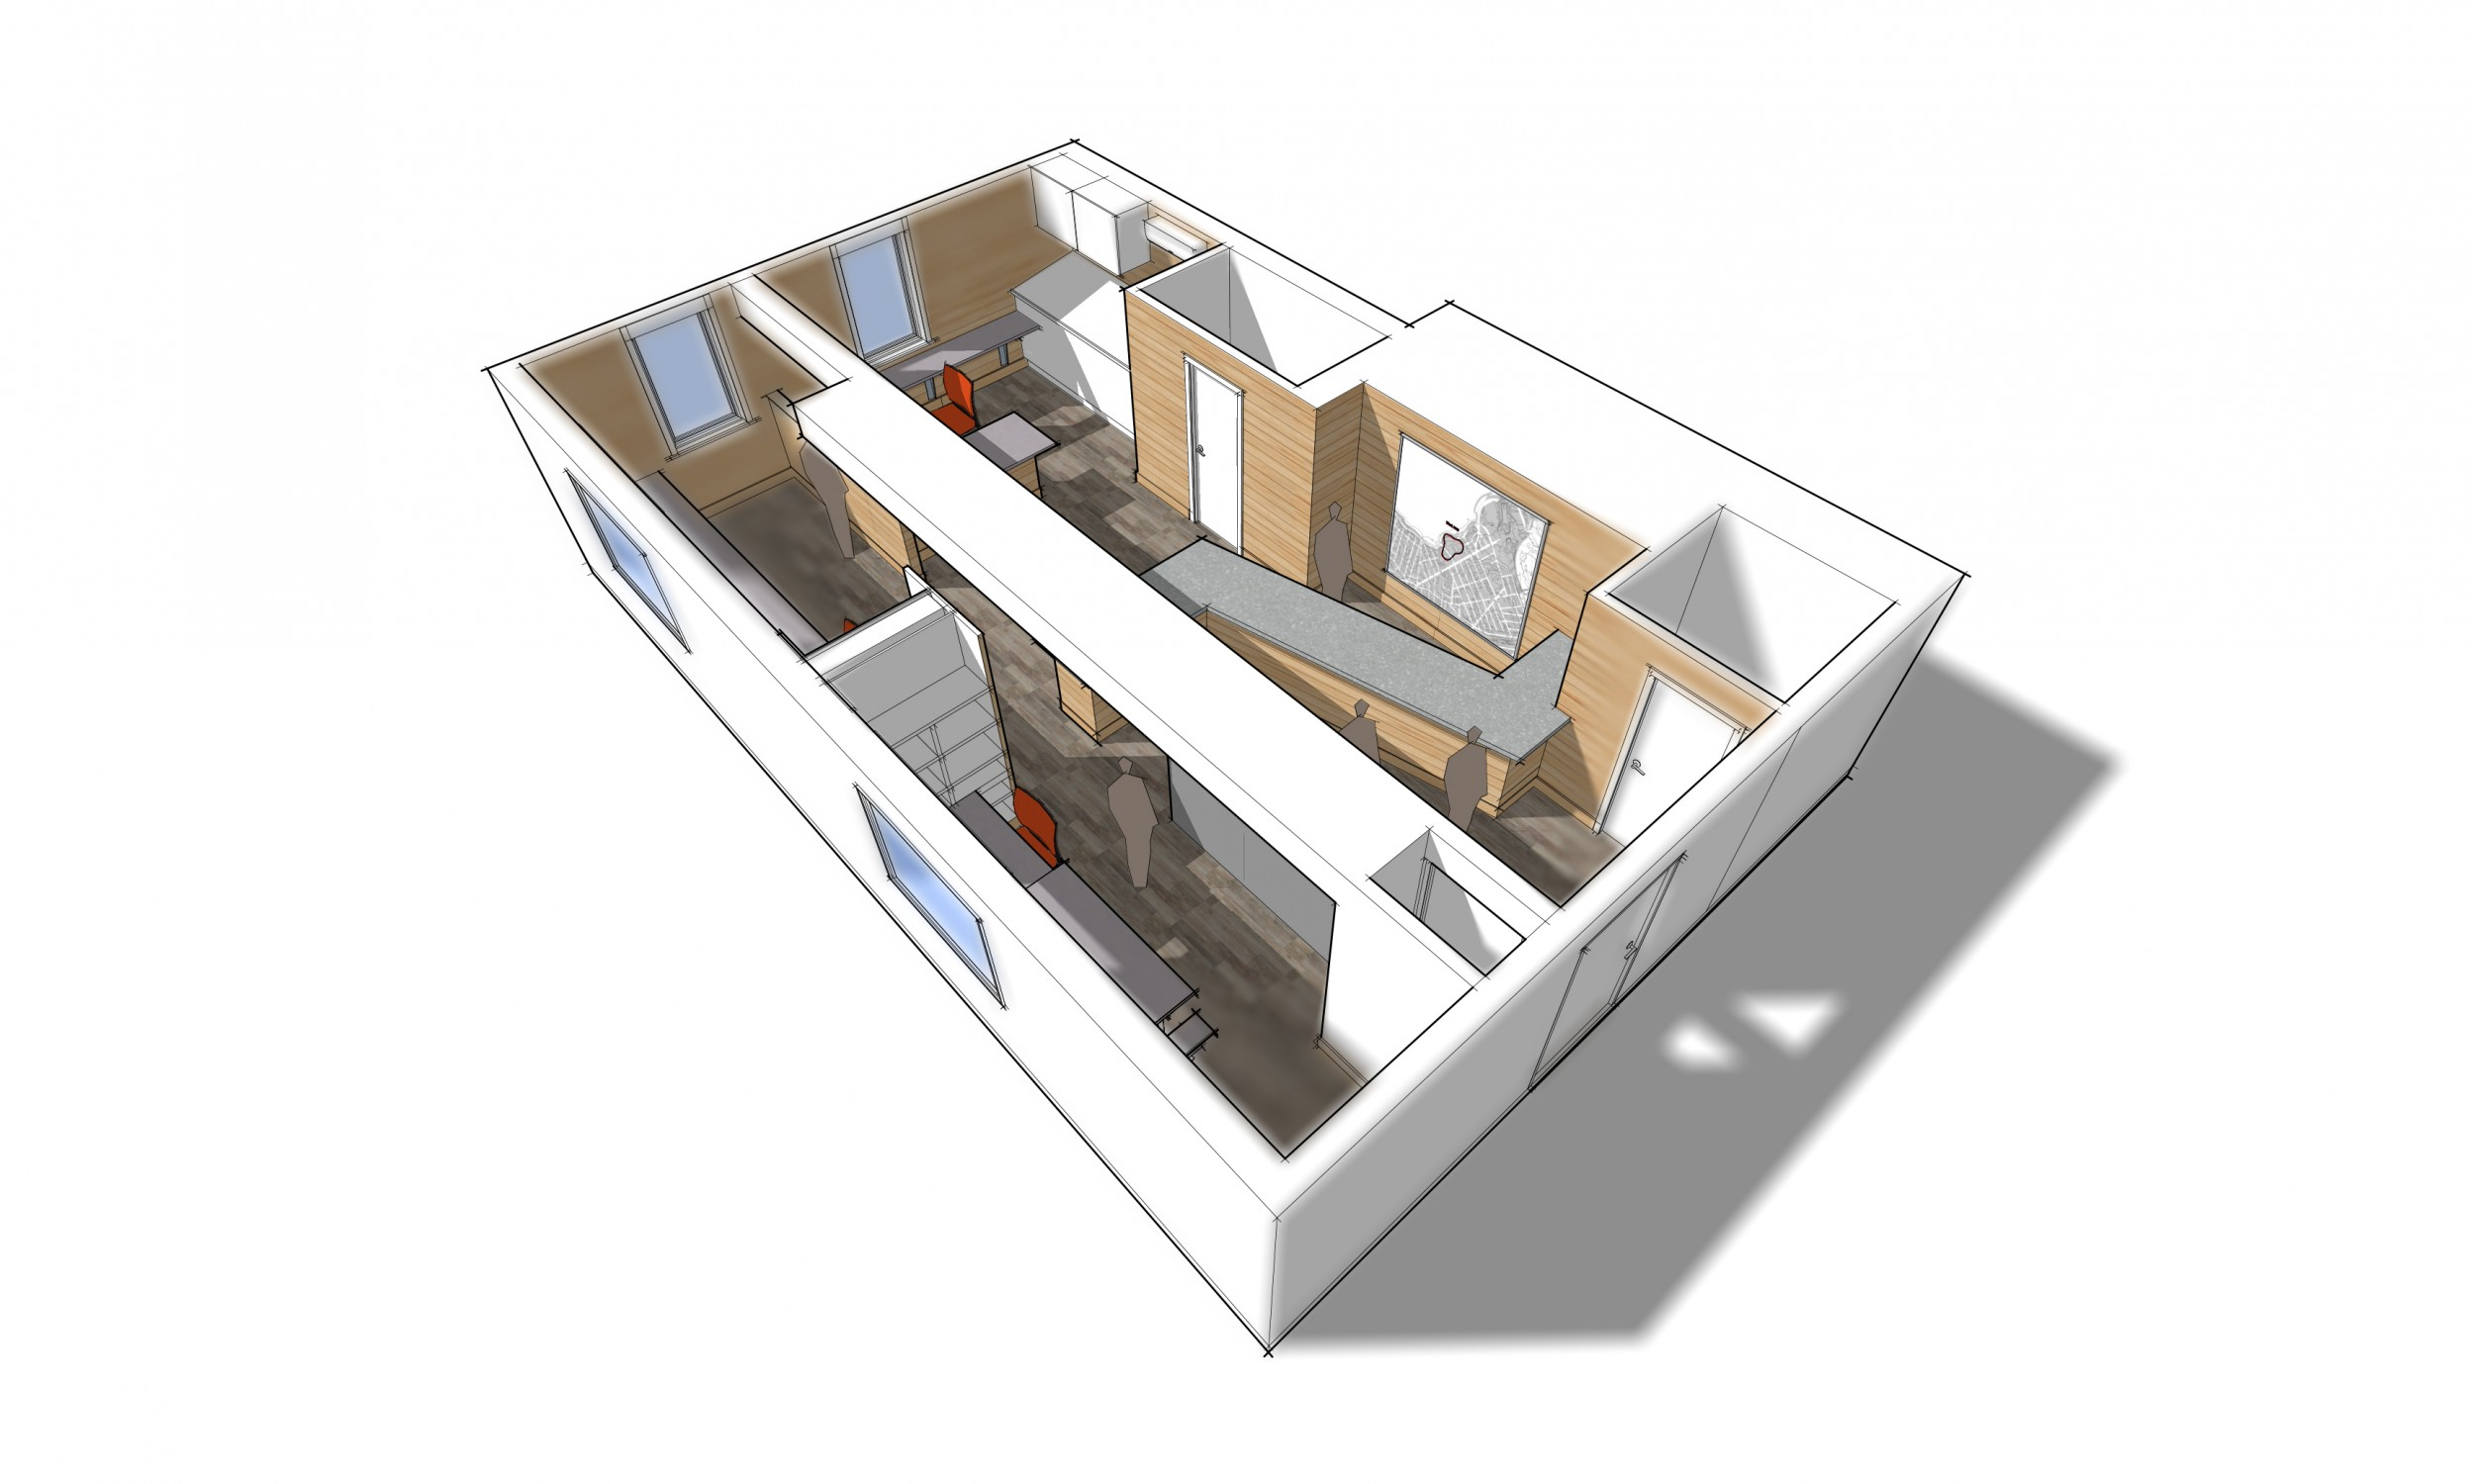 Project Rendering, Design, Sketchup rendering, Architecture